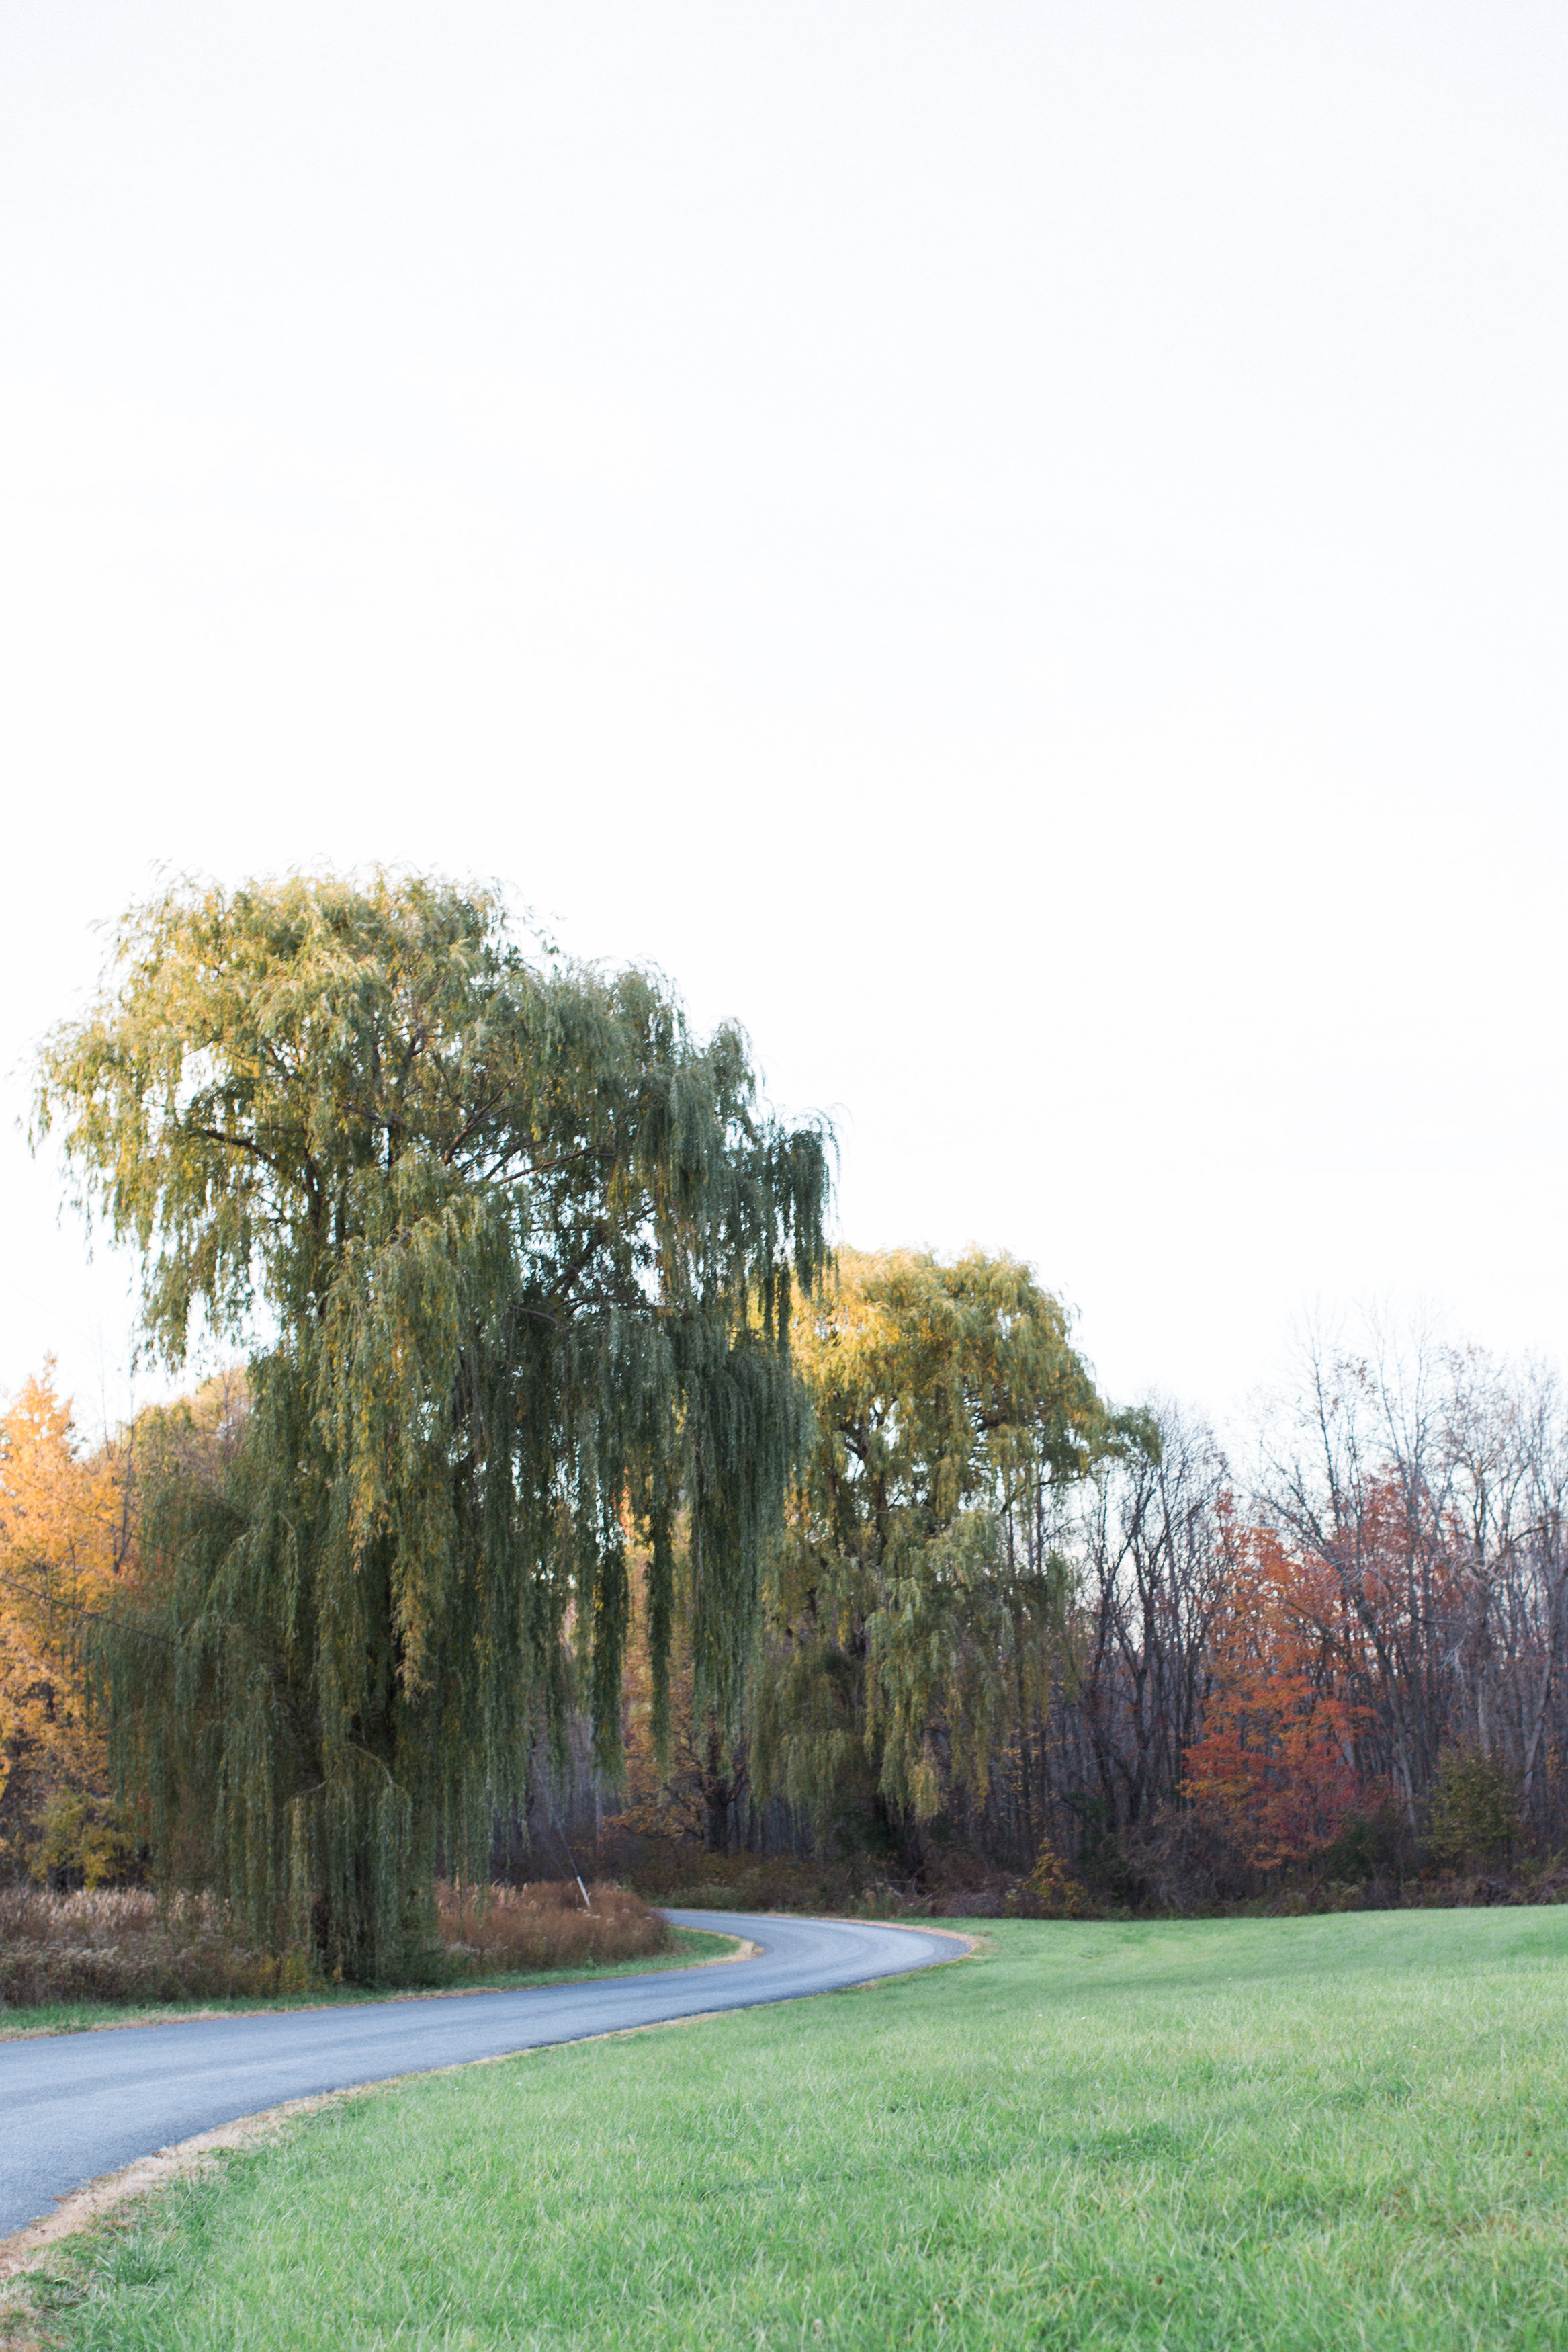 The willow trees